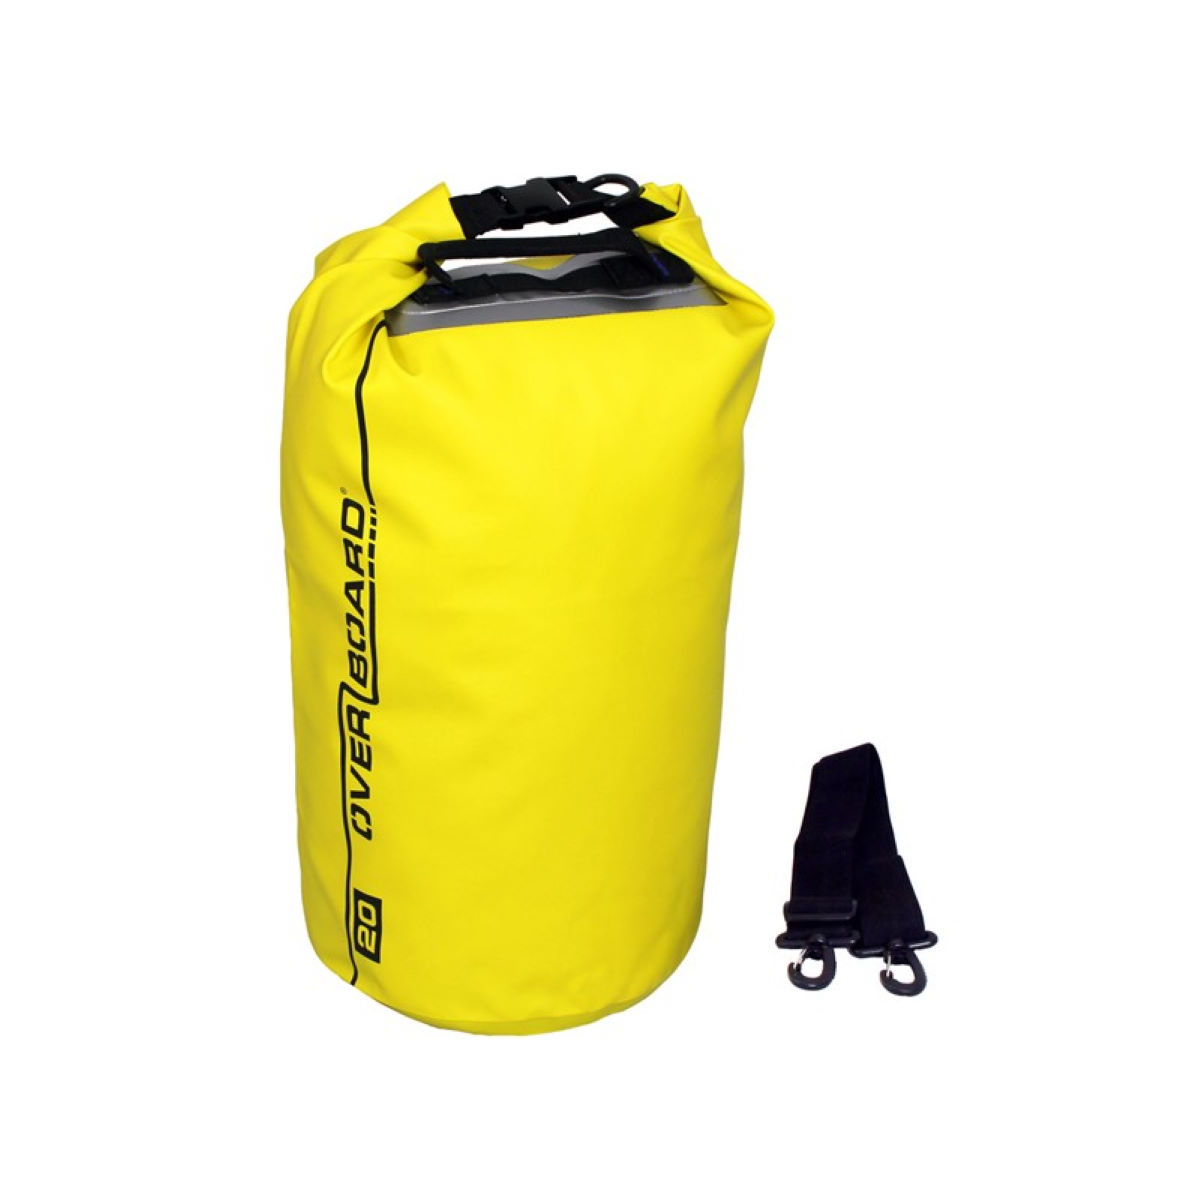 Sac Overboard Dry Tube (20 litres) - 20 Litres Yellow